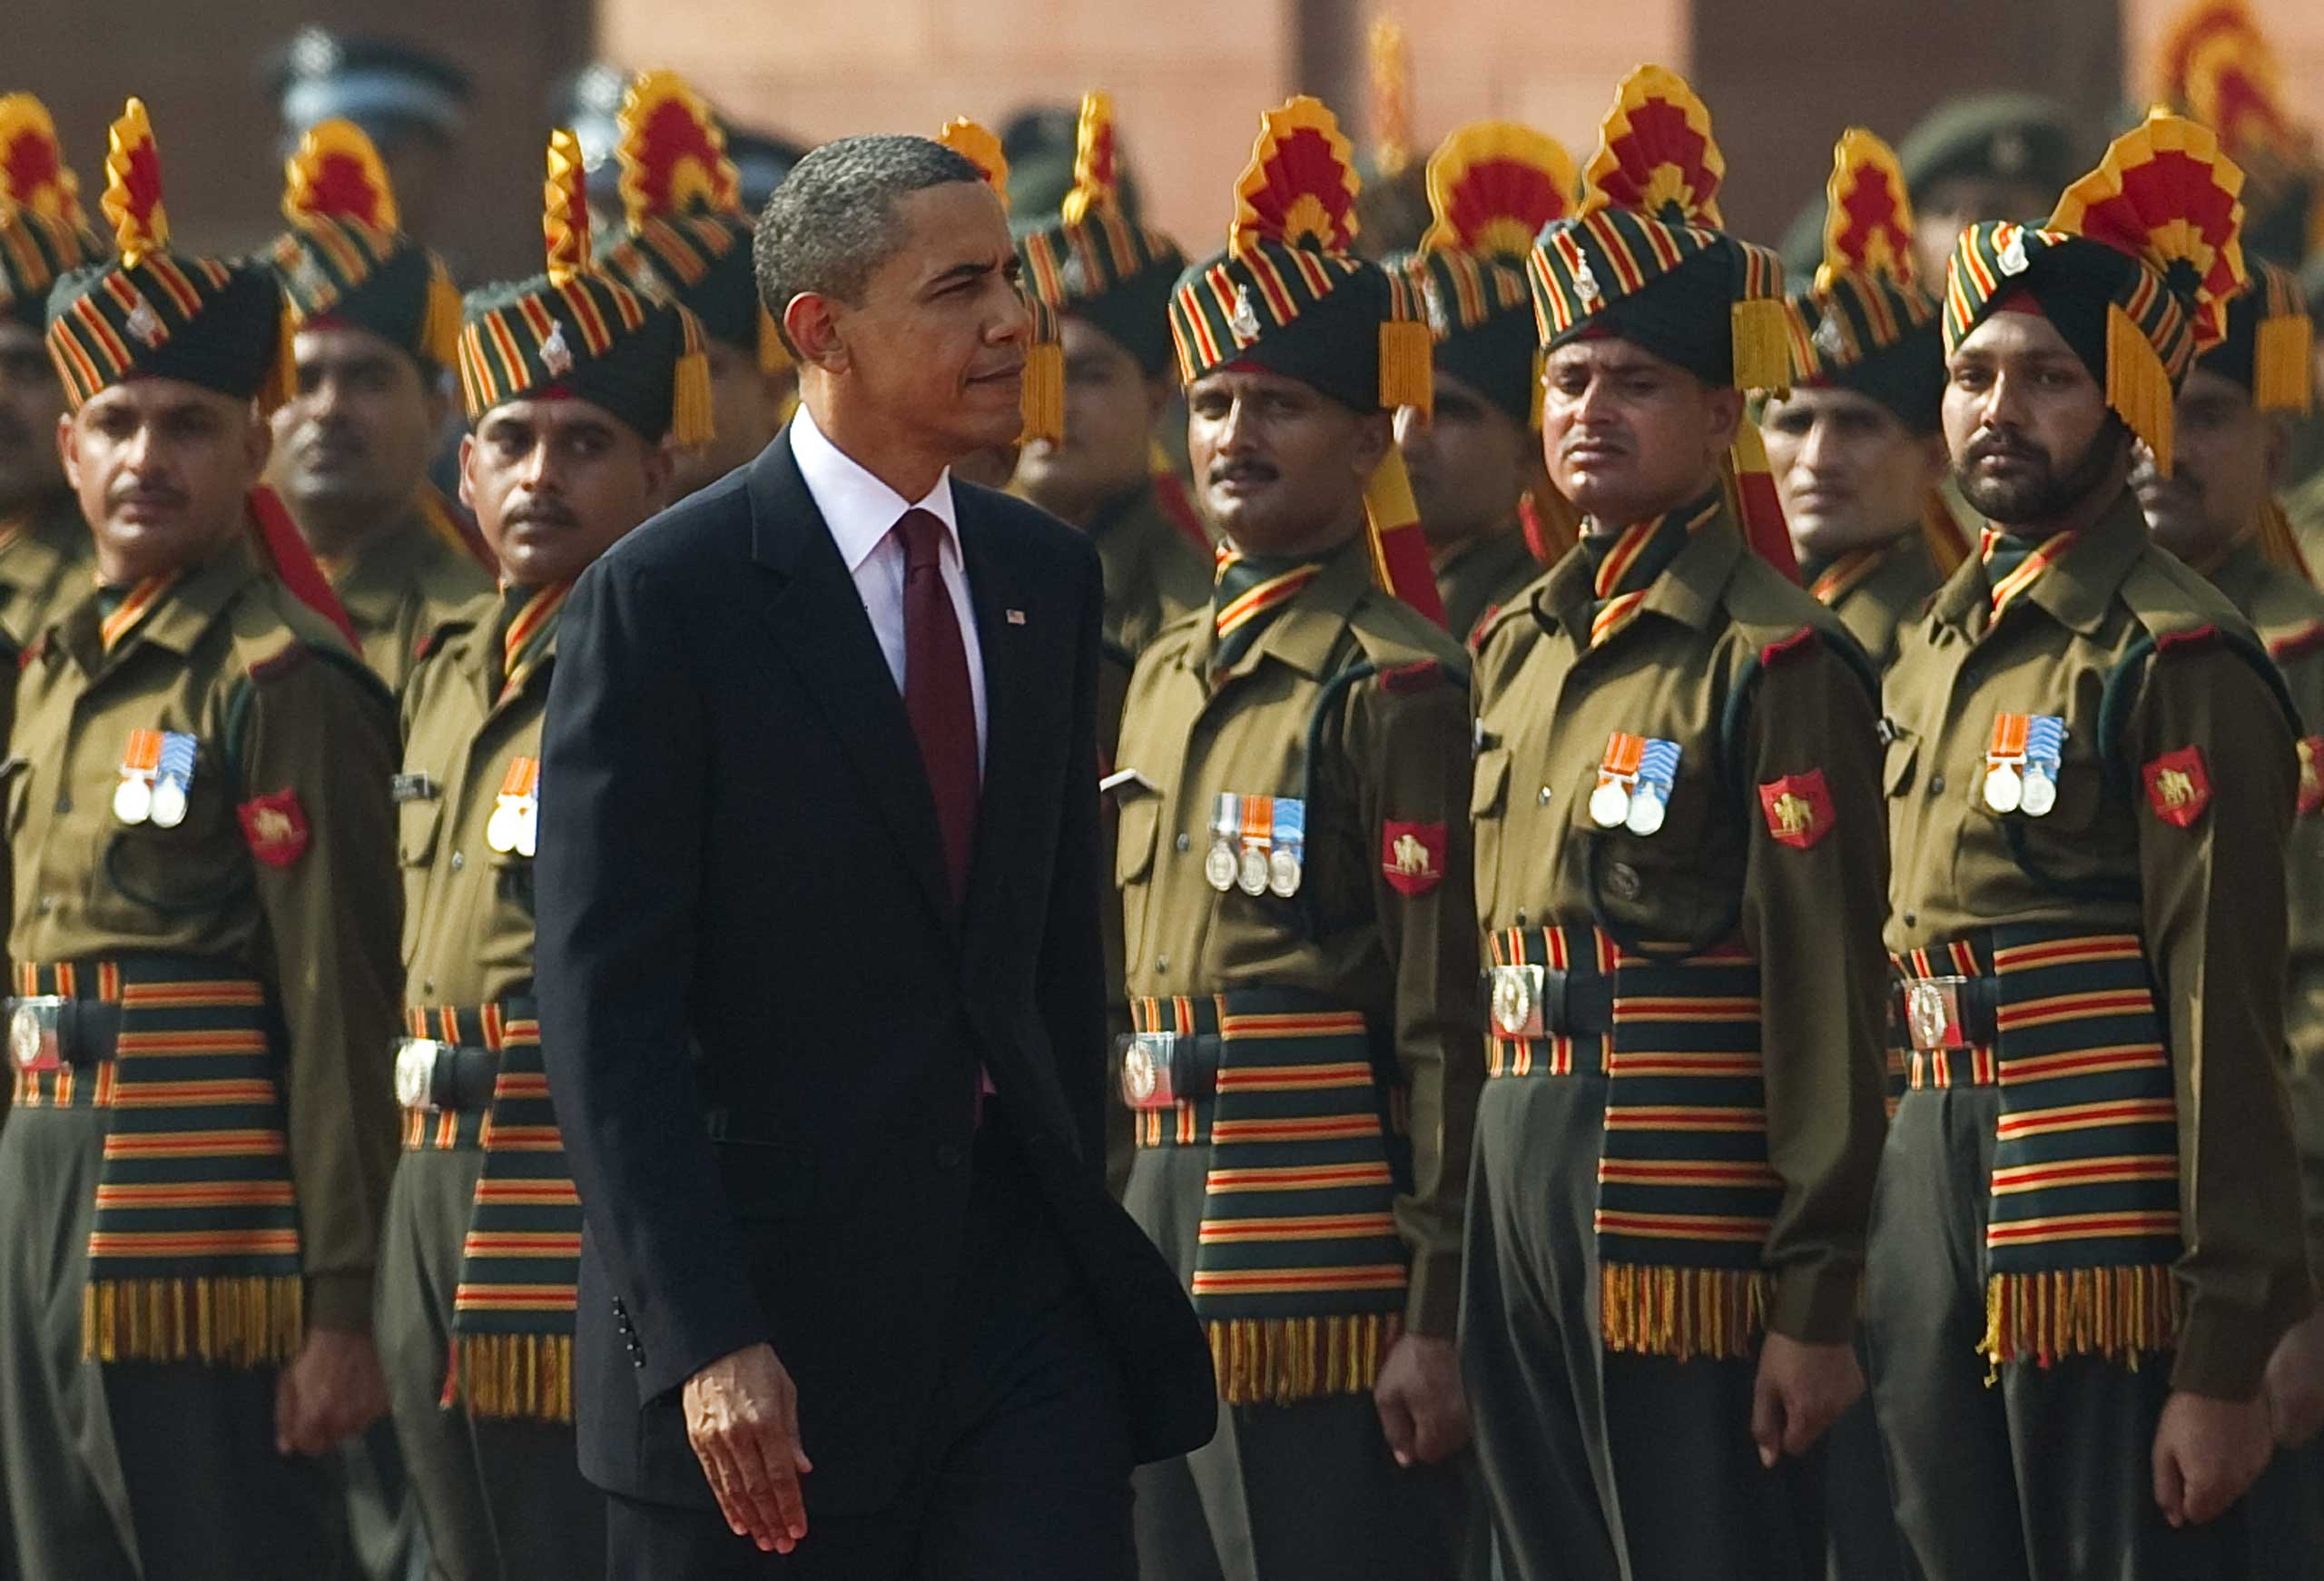 <b>2010:</b> India-US relations became strained during the Obama Administration due to its policies on insurgents in Pakistan and Afghanistan.